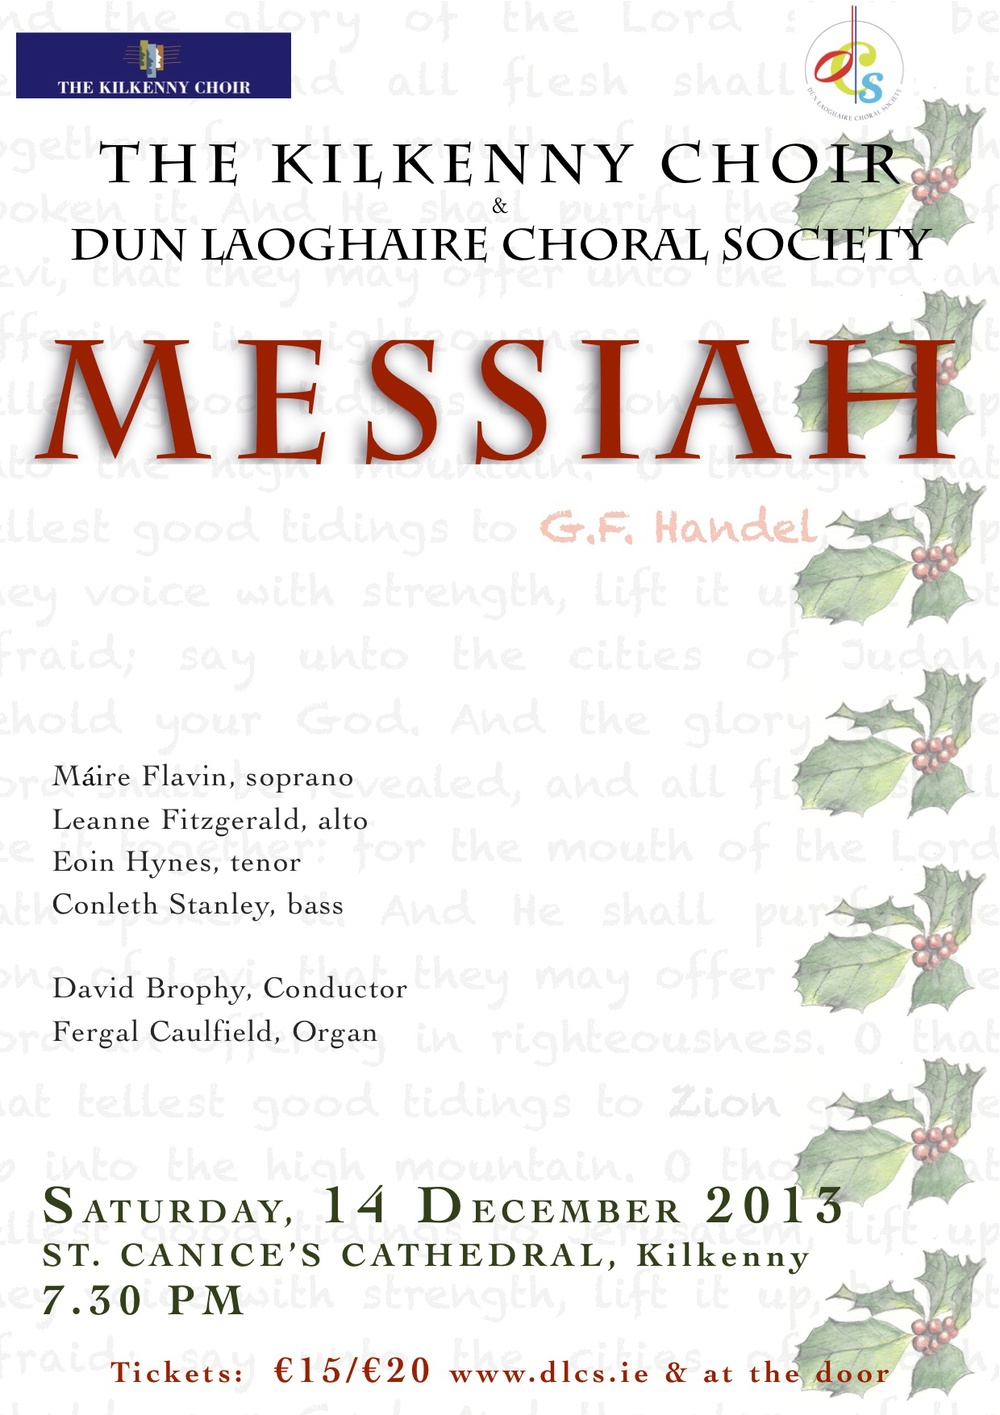 Messiah, St Canice's Cathedral, Kilkenny, 14th December 2013